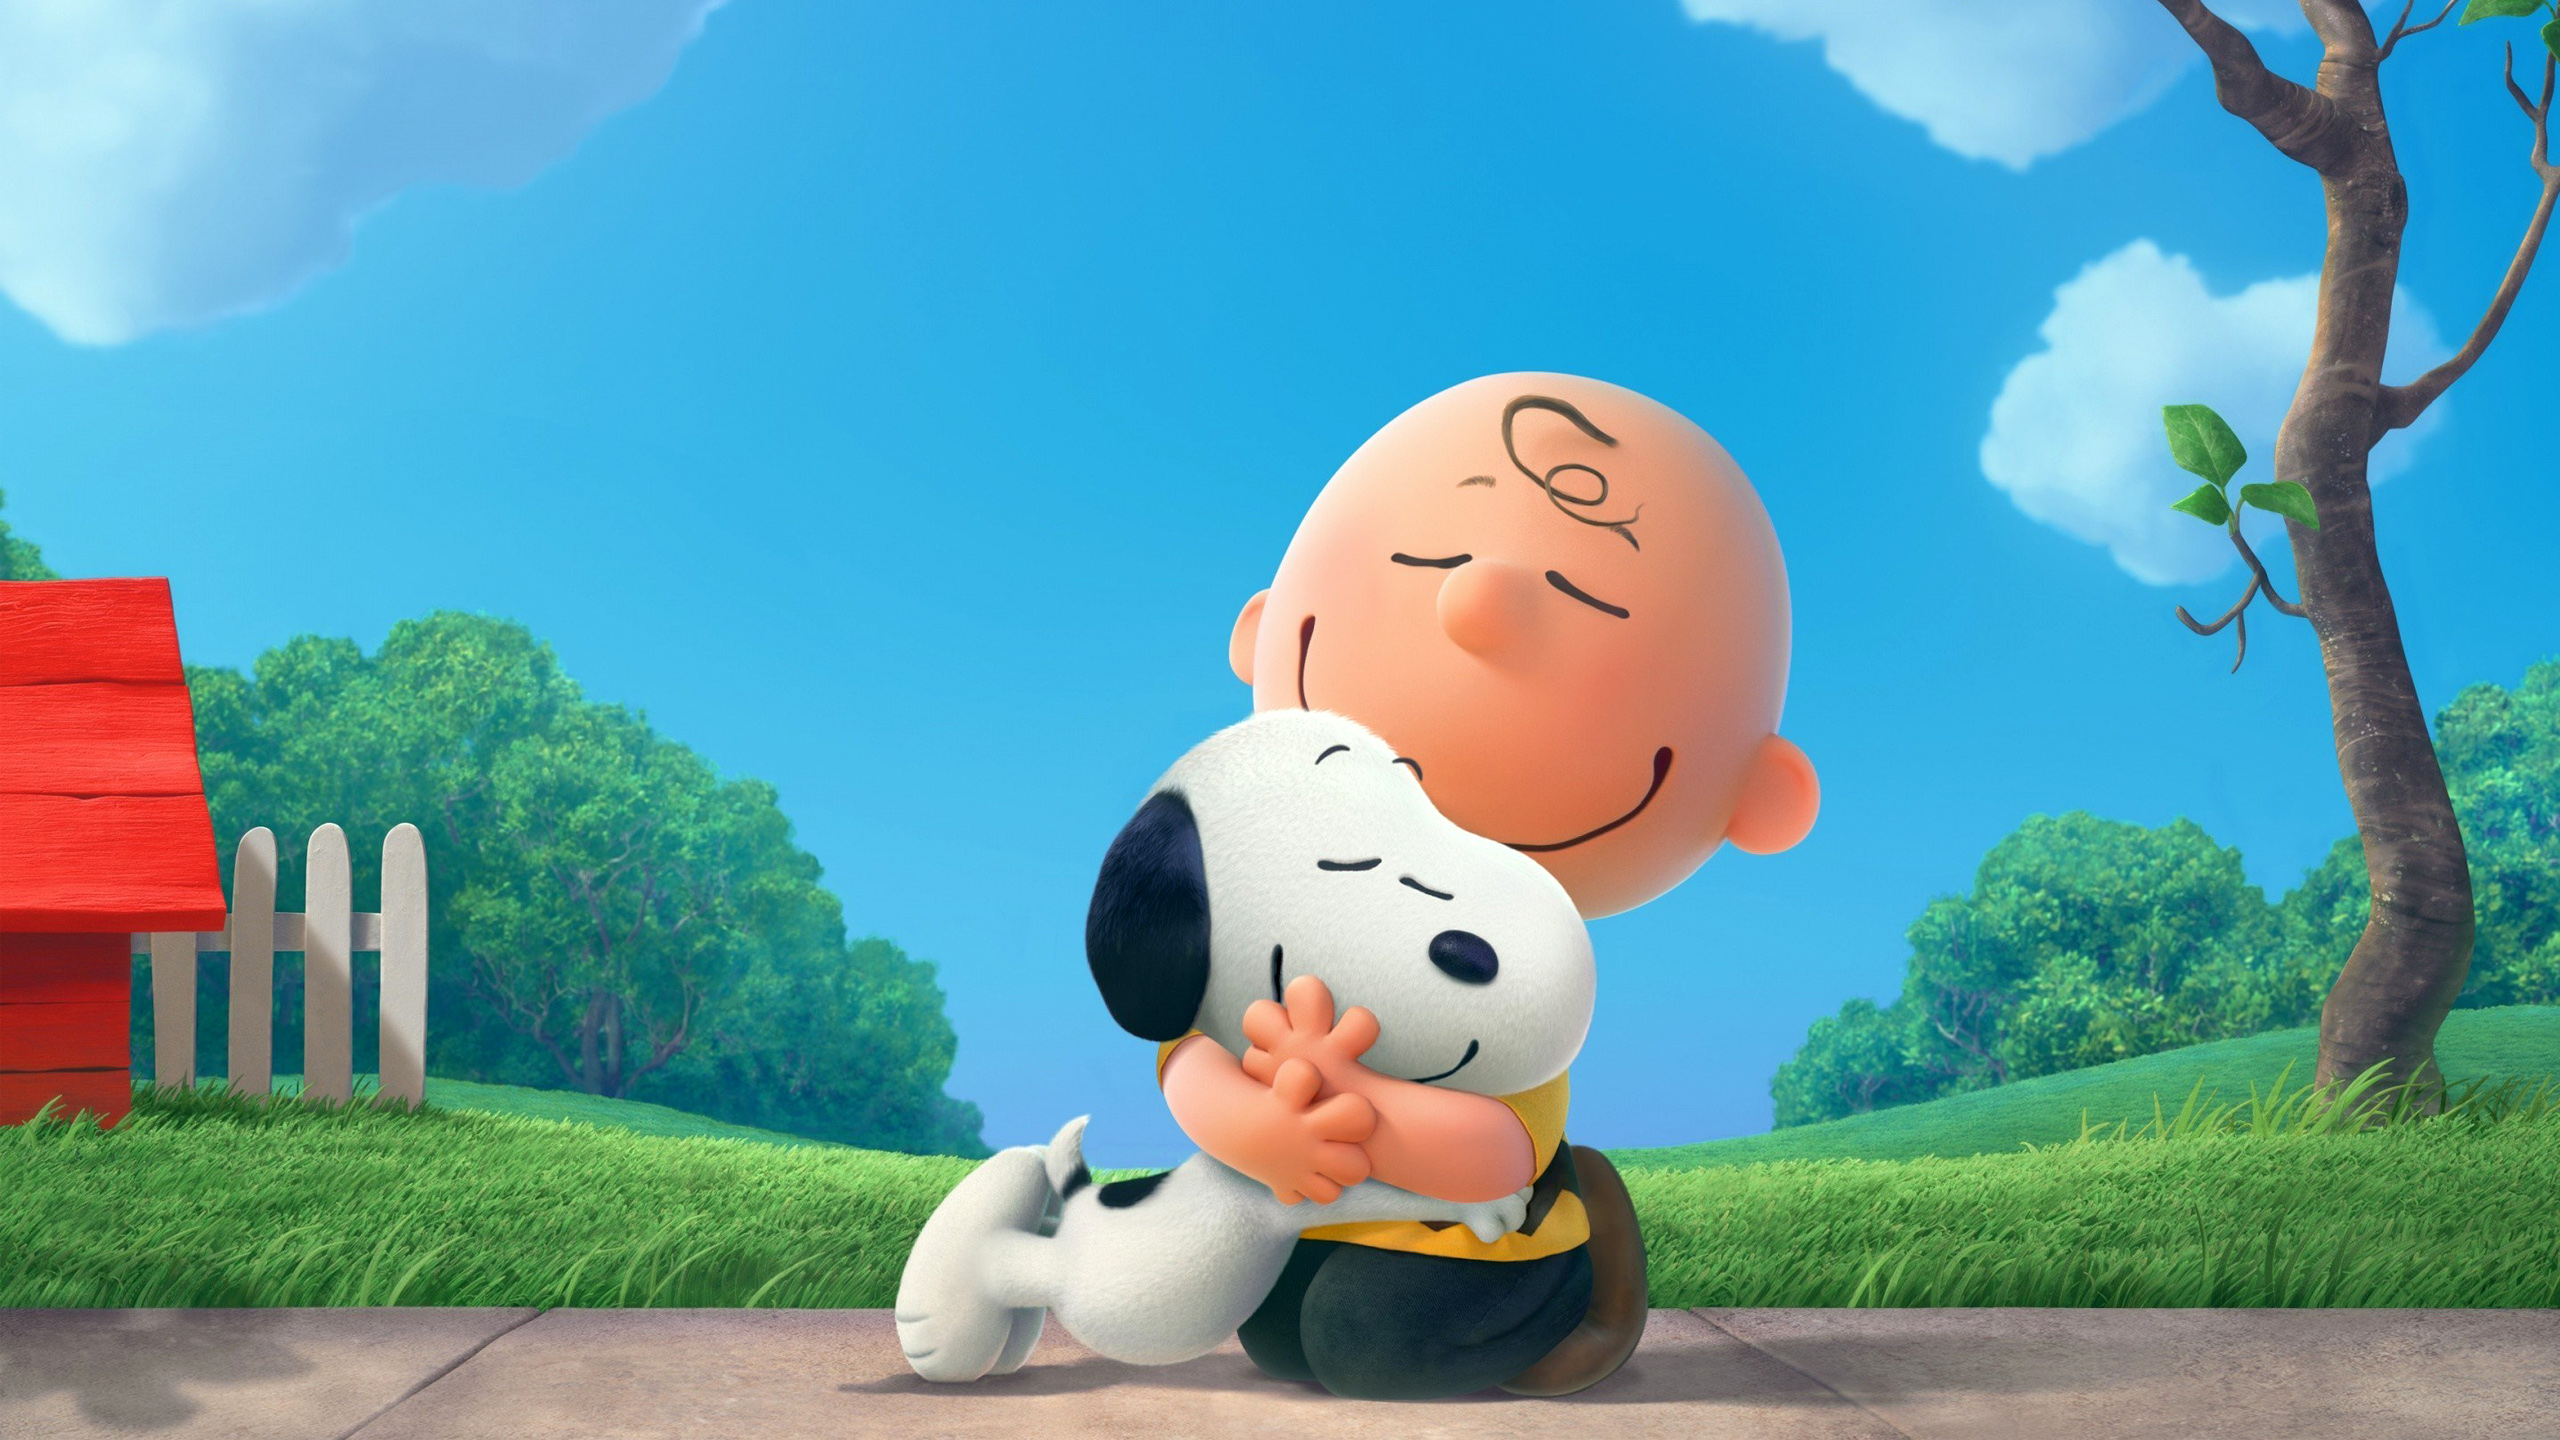 28 Best Snoopy wallpapers for Desktop Design Trends 2560x1440